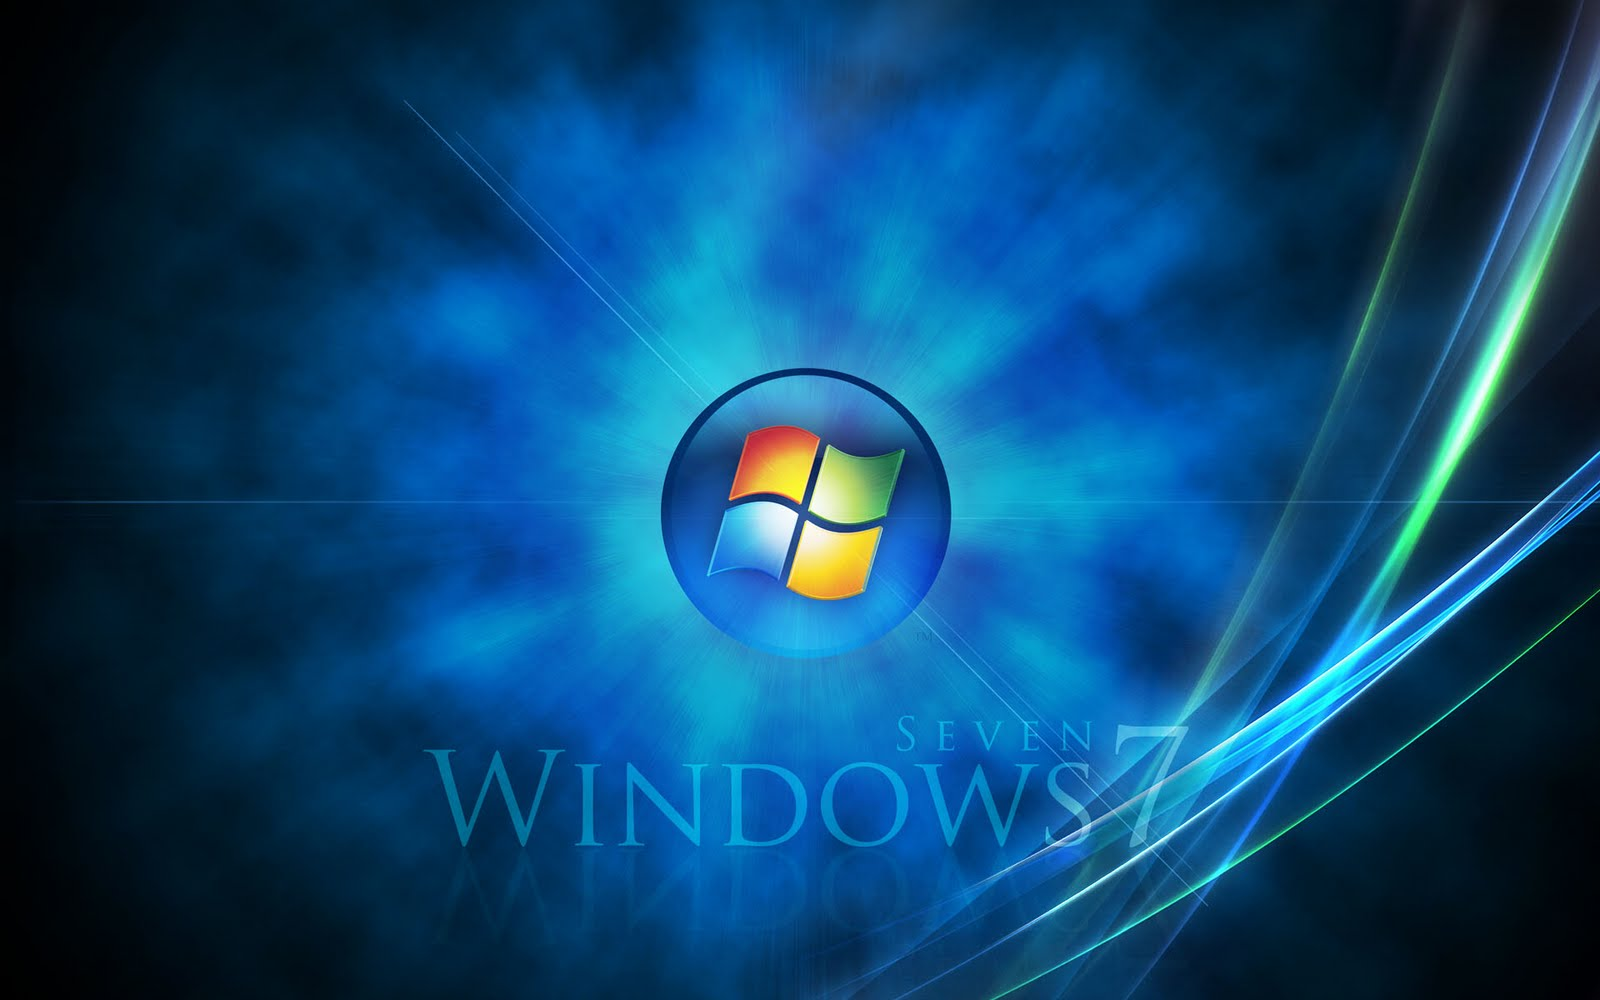 Desktop Background Windows 7 2 Thumbgal